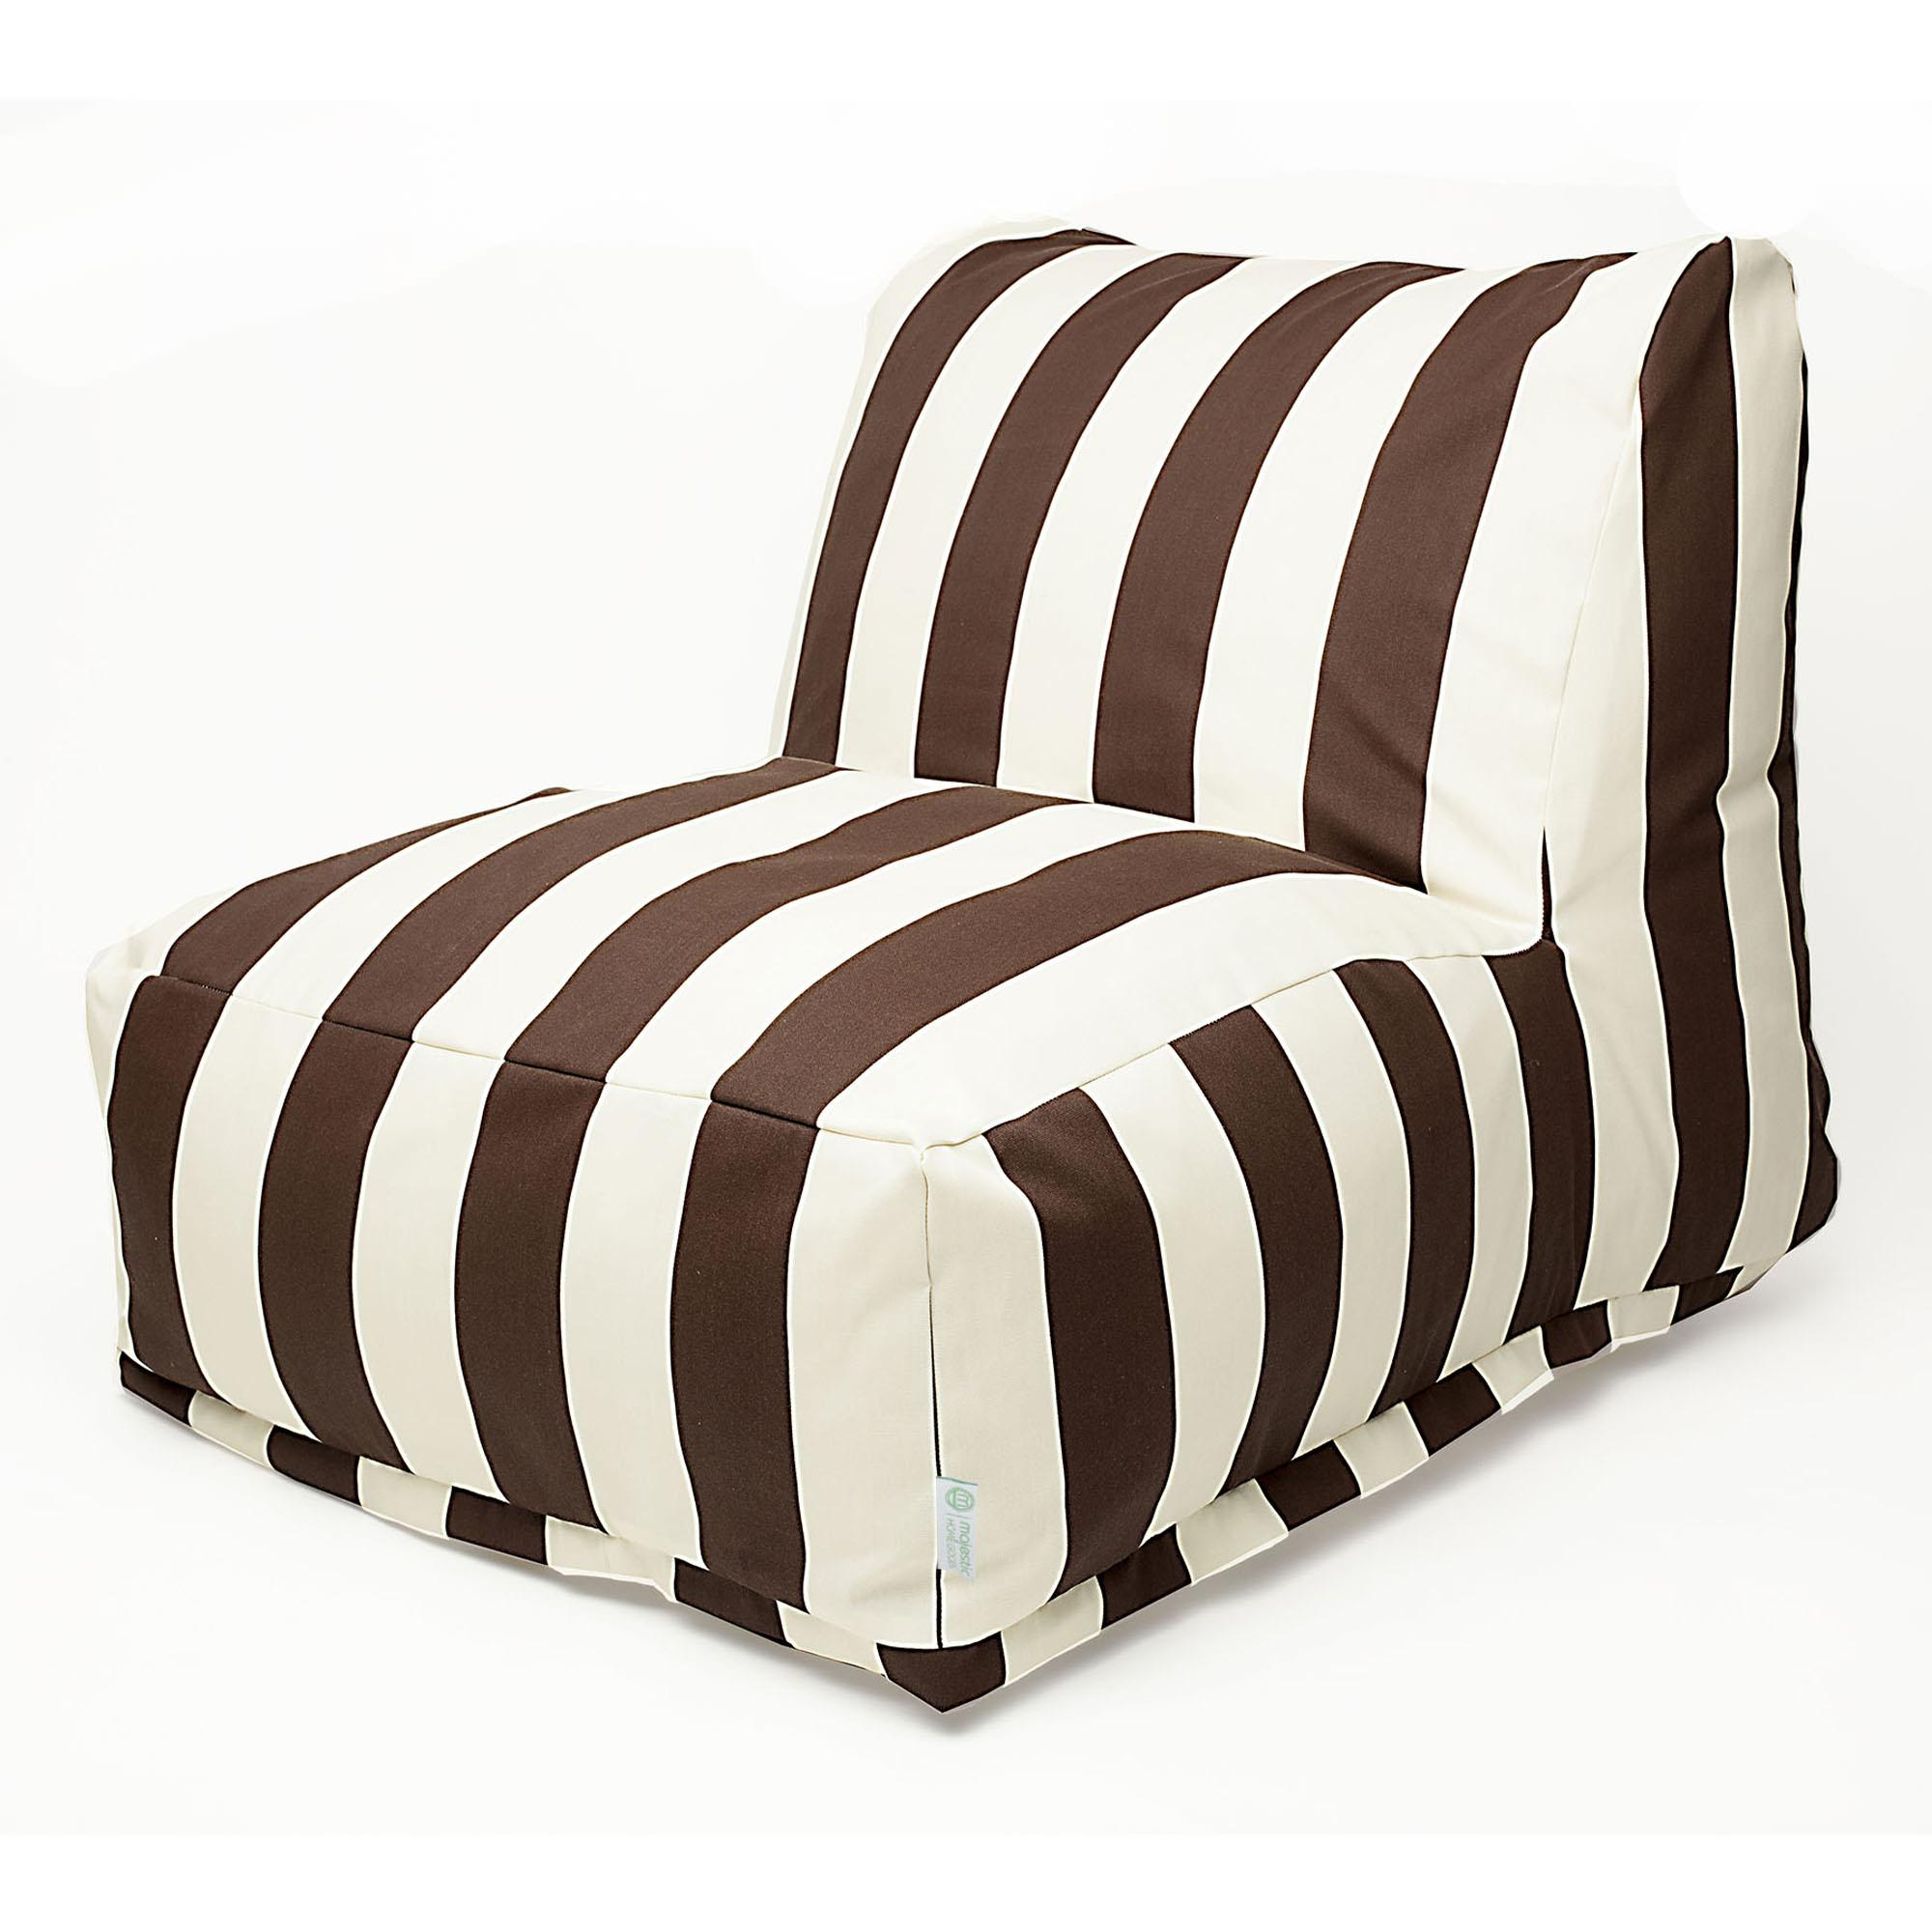 Outdoor Bean Bag Chairs Chocolate Vertical Stripe Outdoor Bean Bag Chair Dfohome